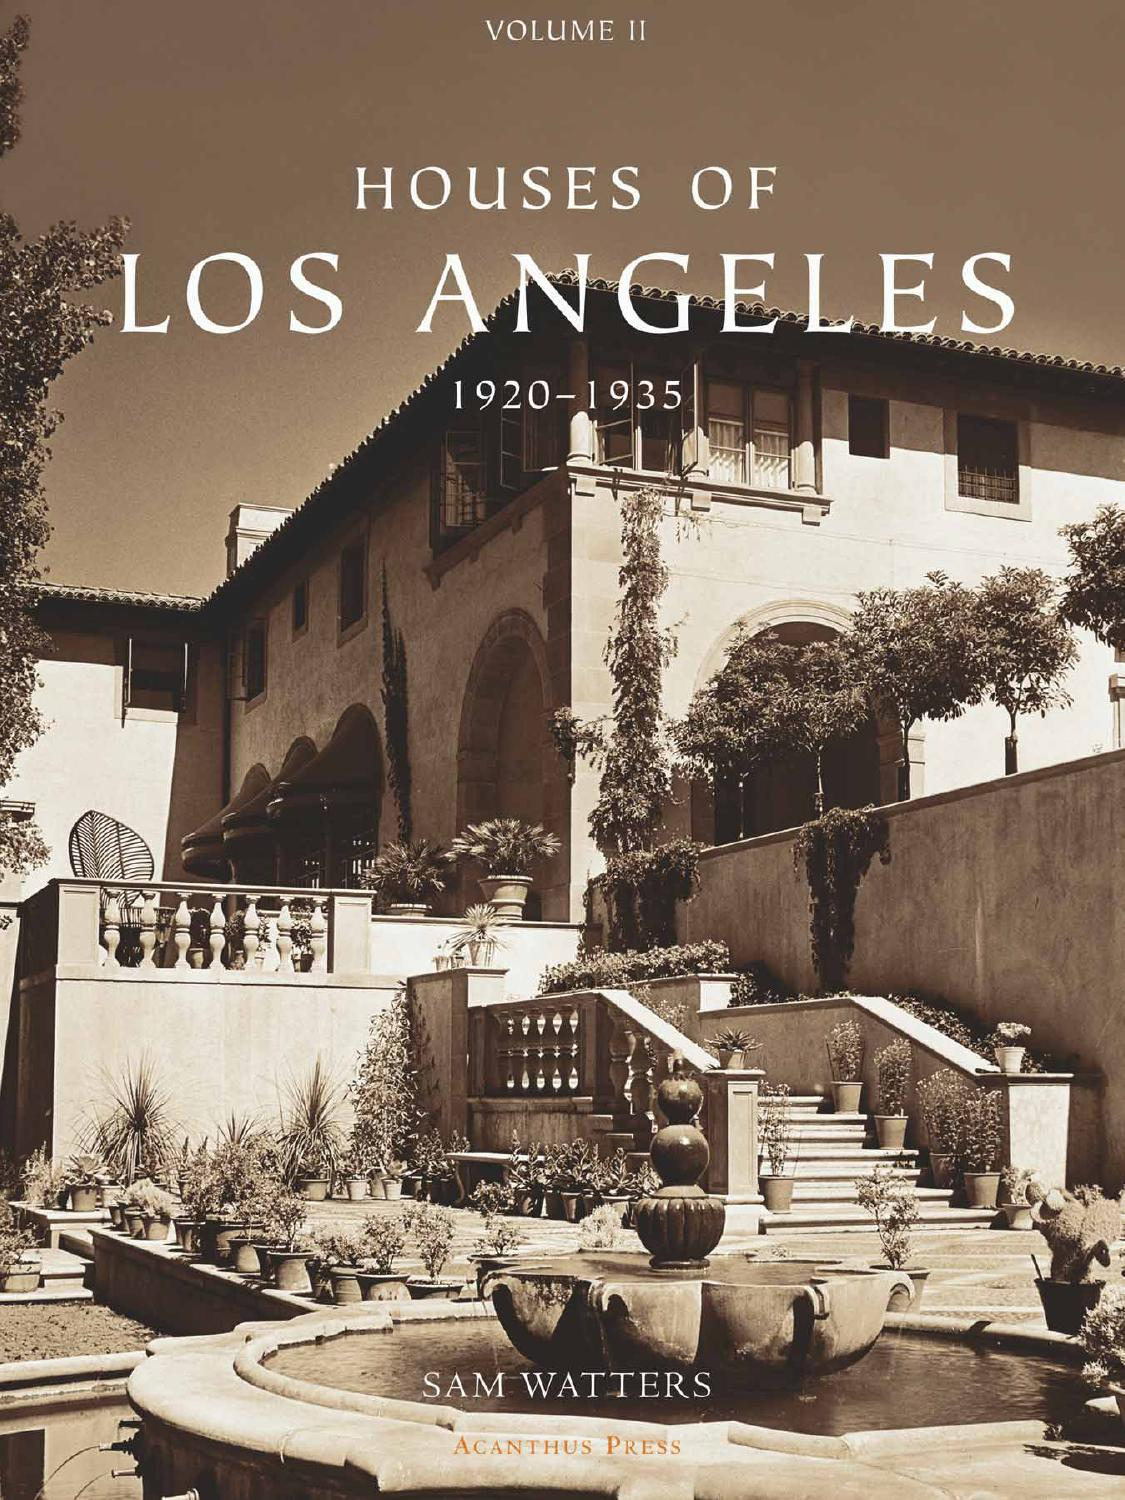 Houses of los angeles vol2 on 1920 home interiors